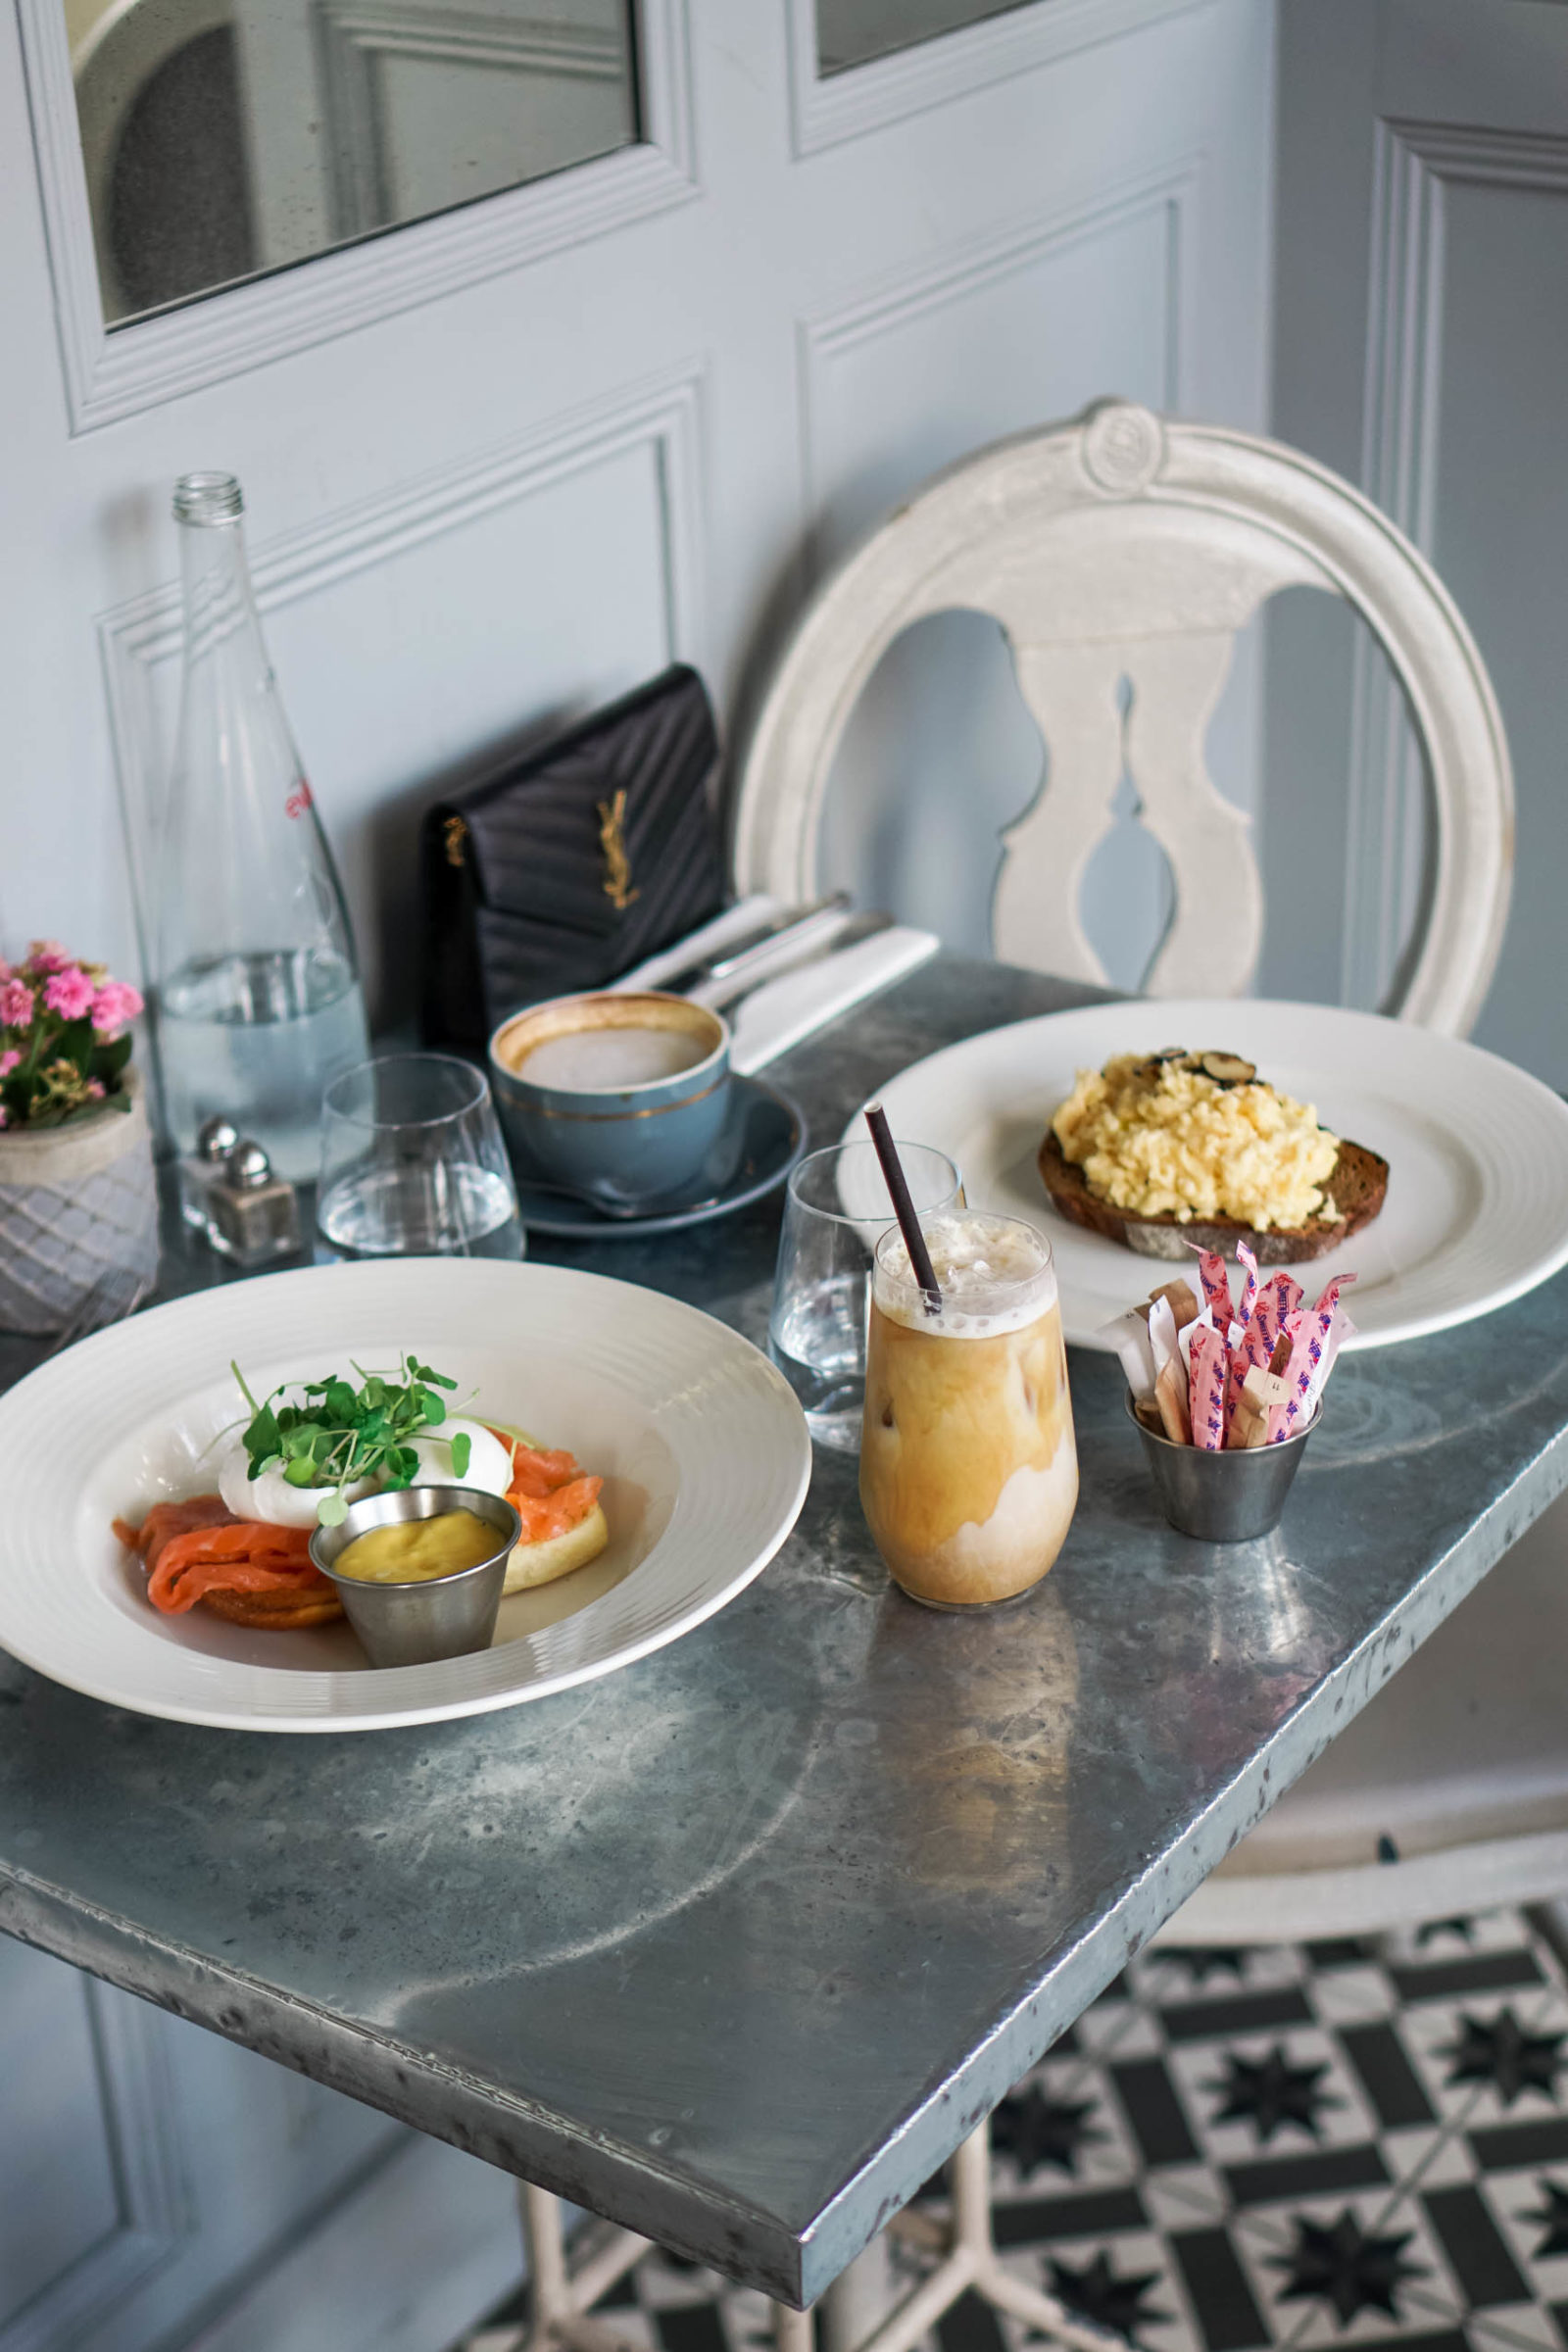 Best brunches in London | Where to eat in London | Aubaine Cafe in Selfridges London